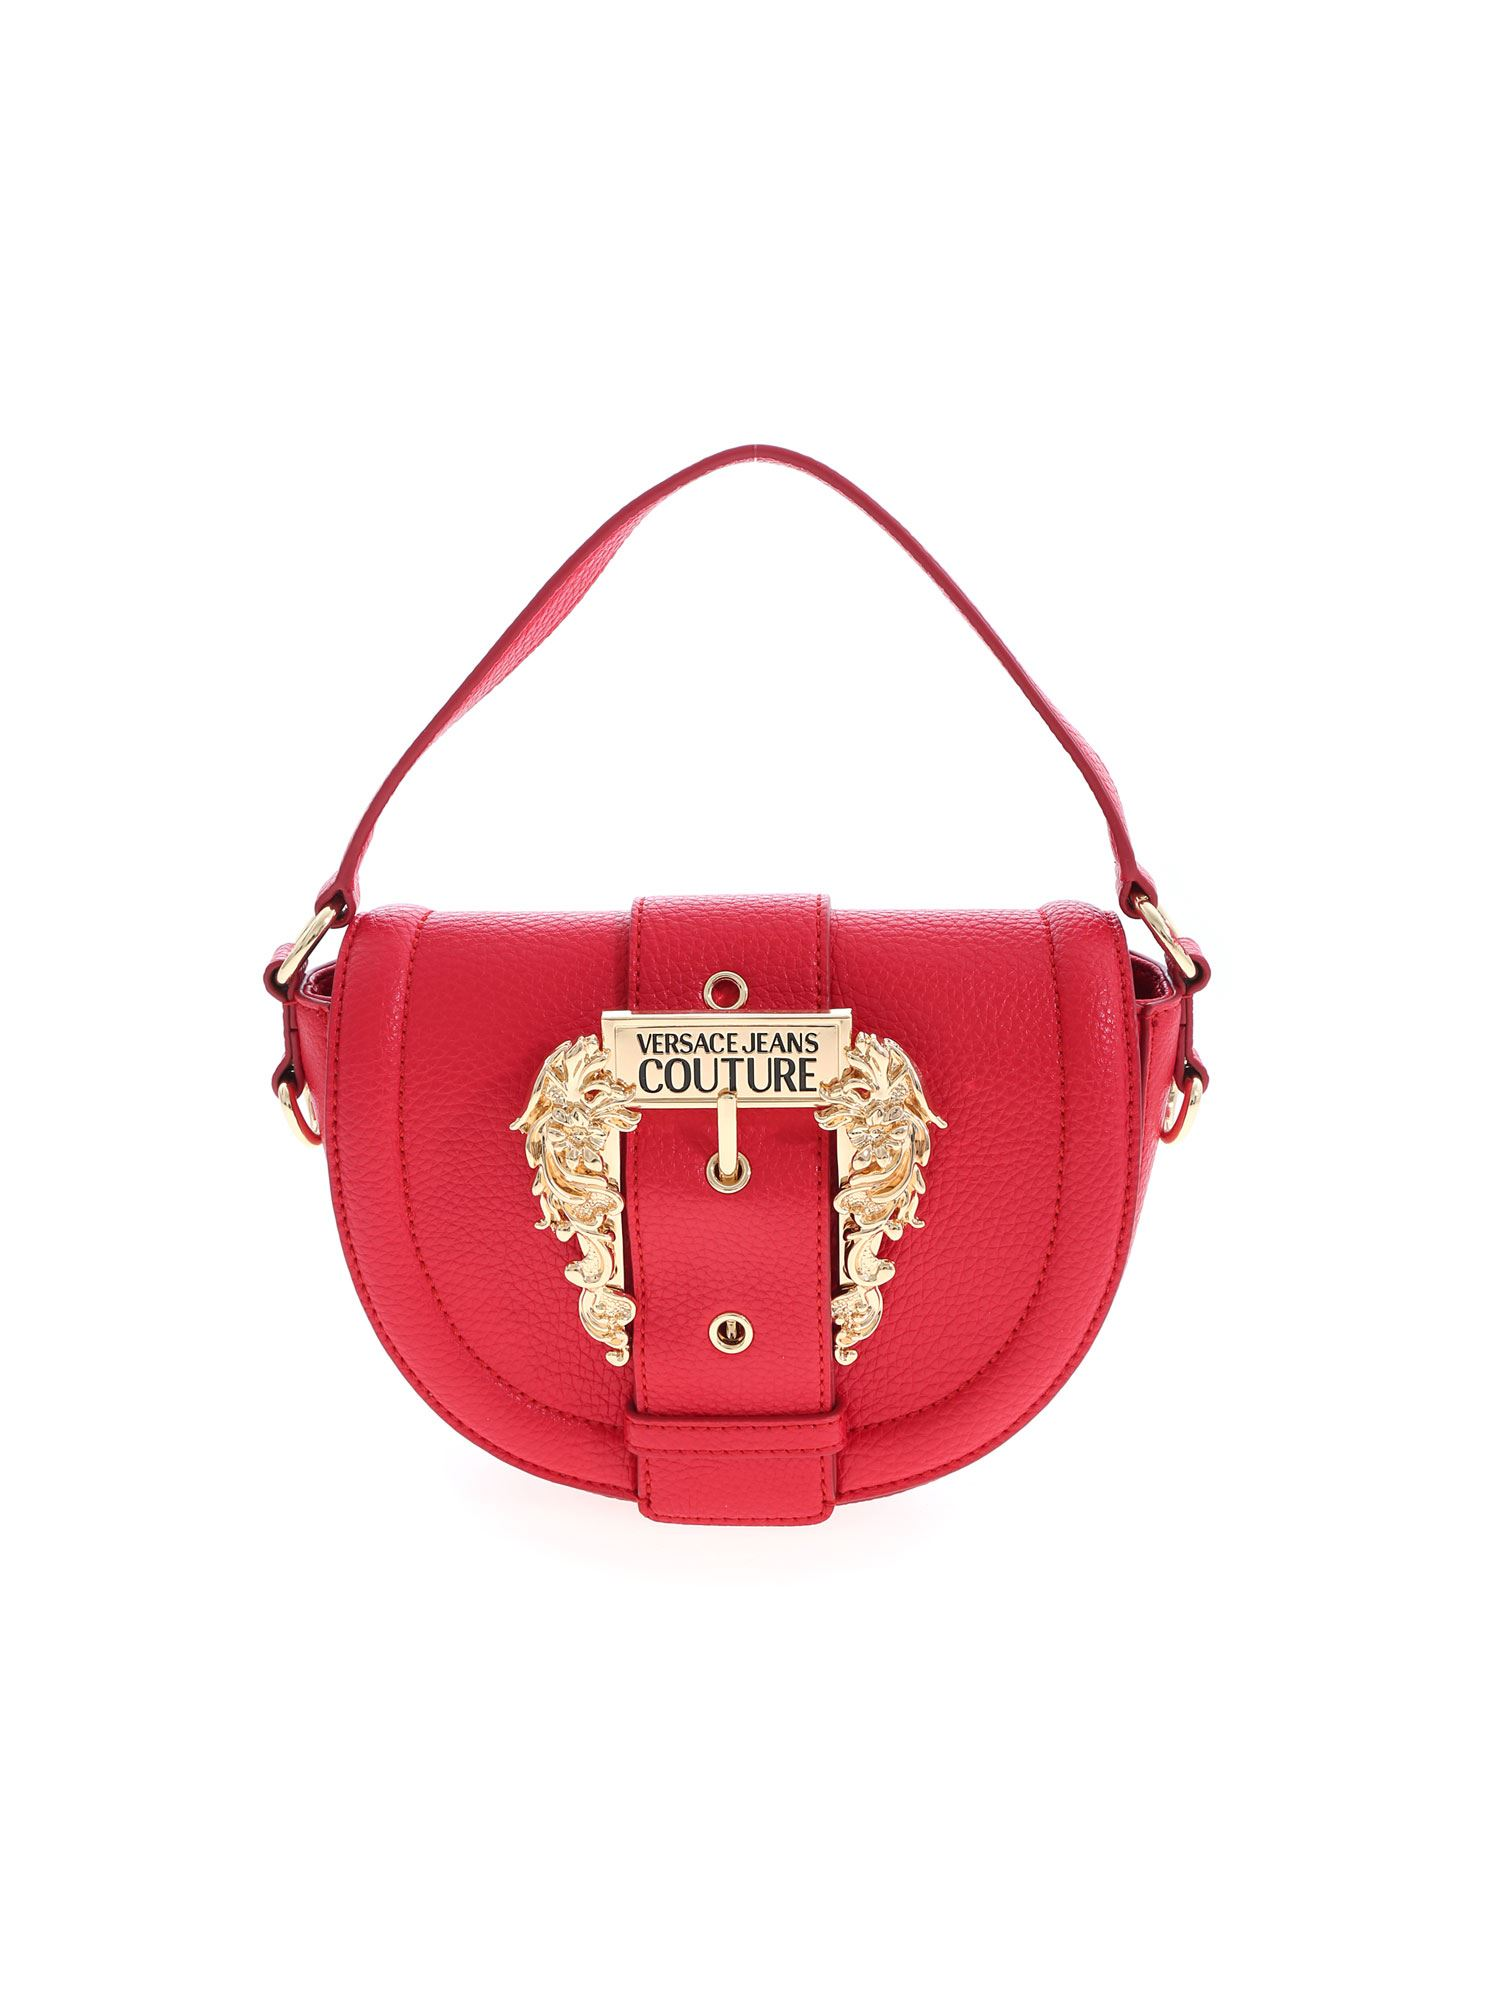 Versace Jeans Couture Leathers BUCKLE HANDBAG IN RED